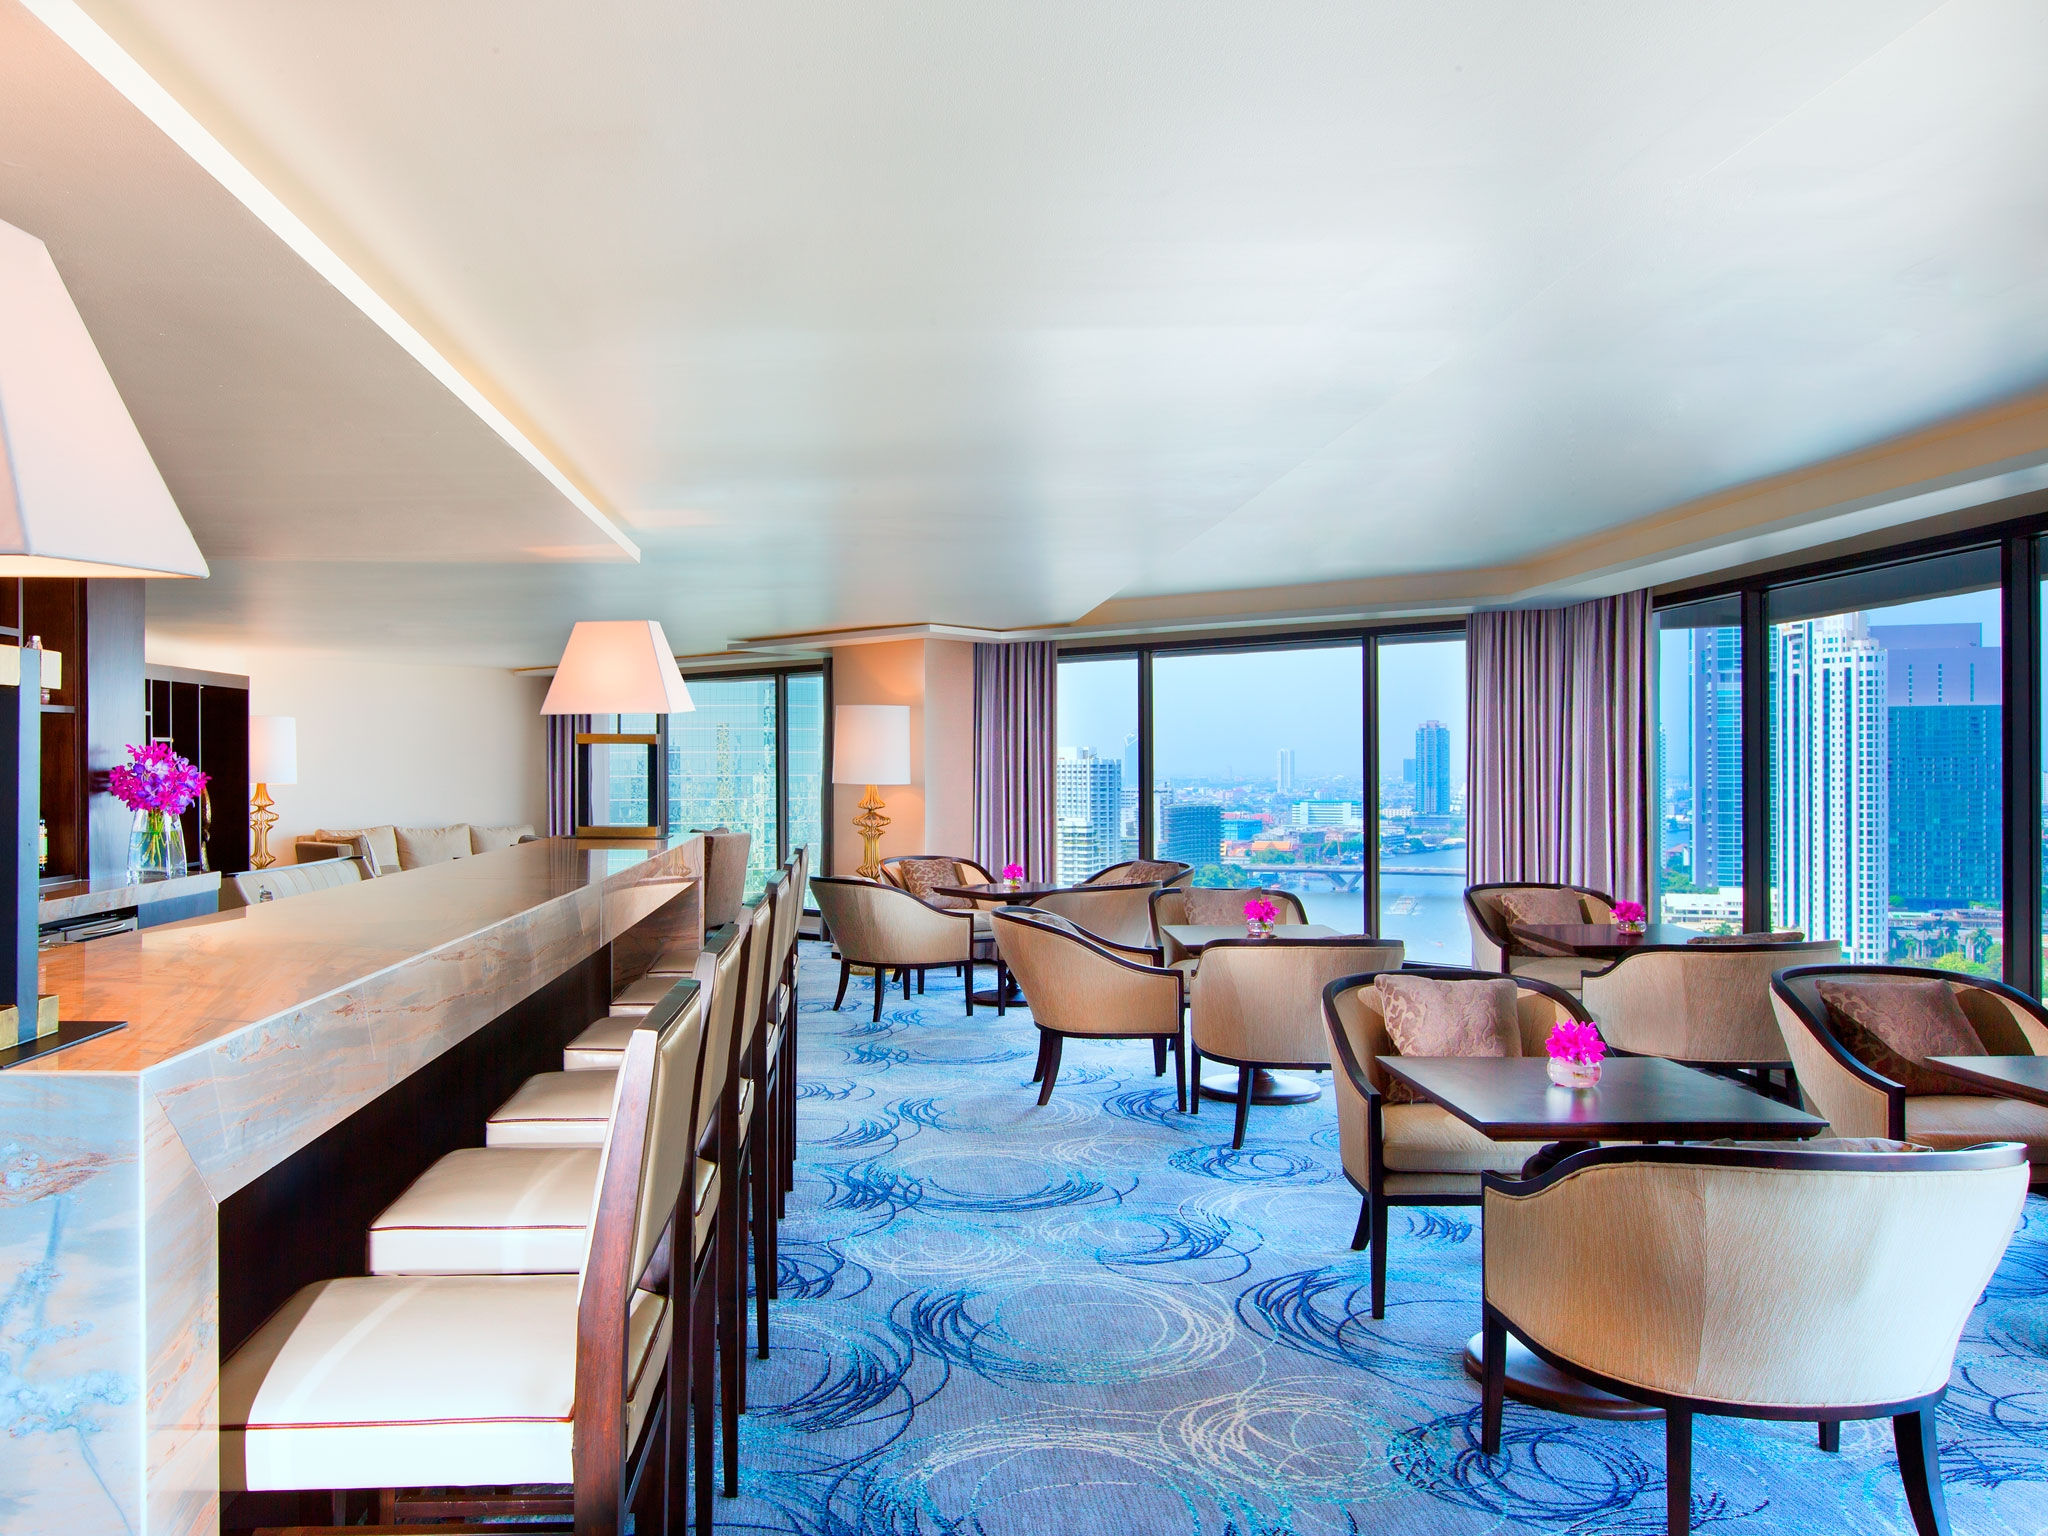 Sheraton Club at Royal Orchid Sheraton Hotel Bangkok